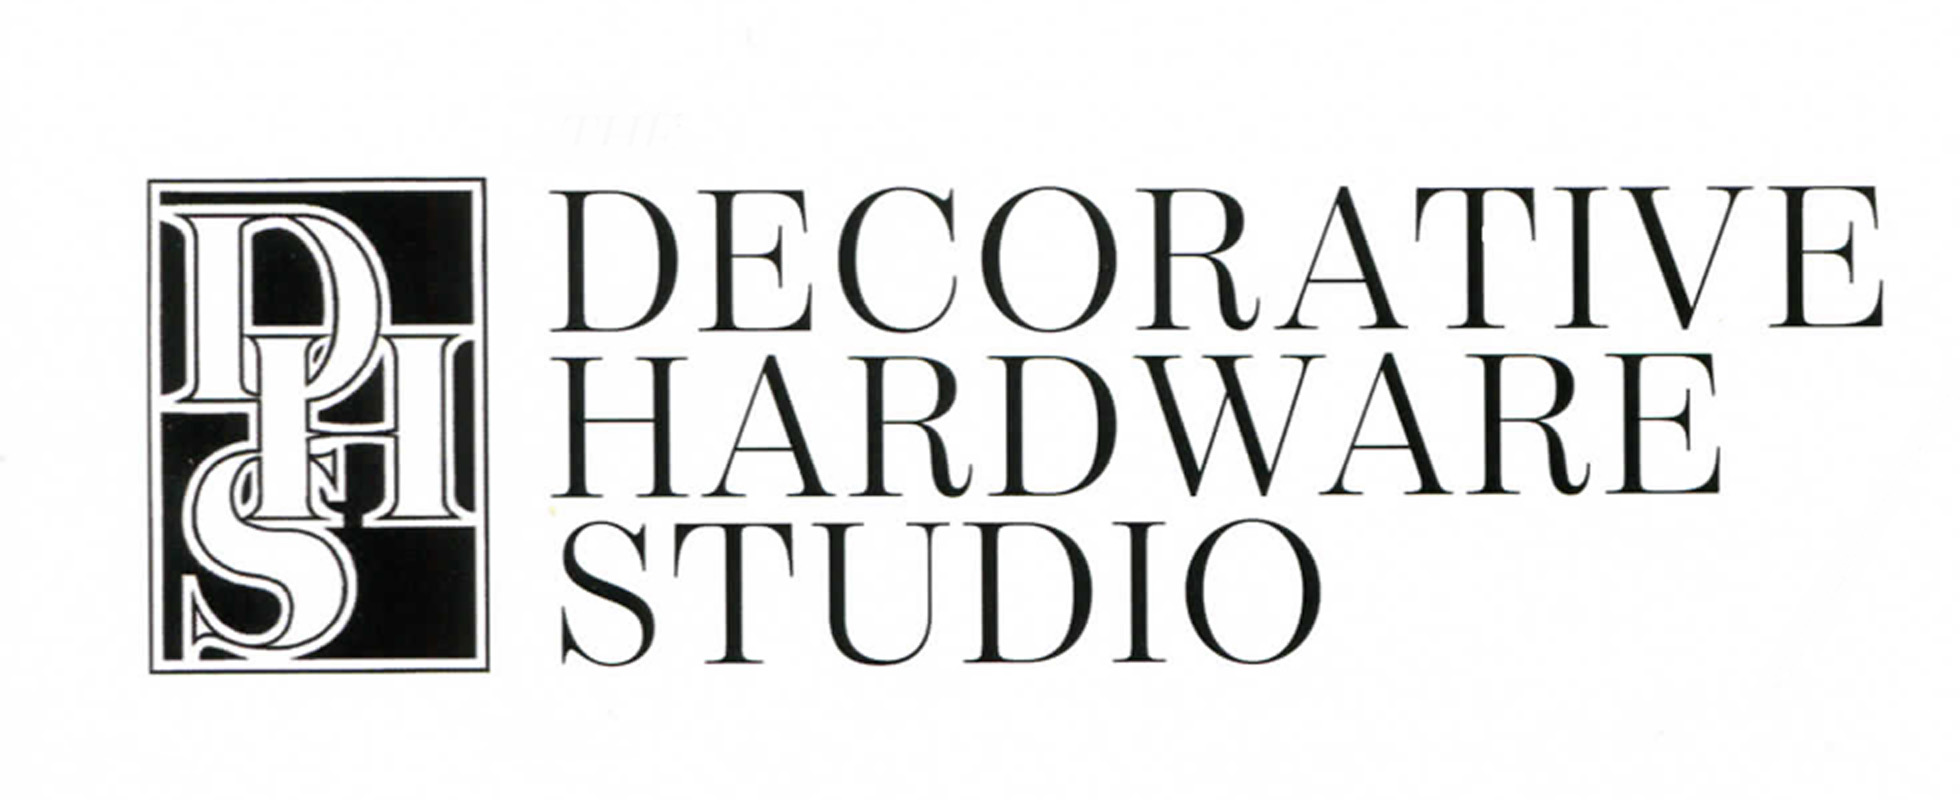 DecorativeHardwareStudio_horizontal.jpg